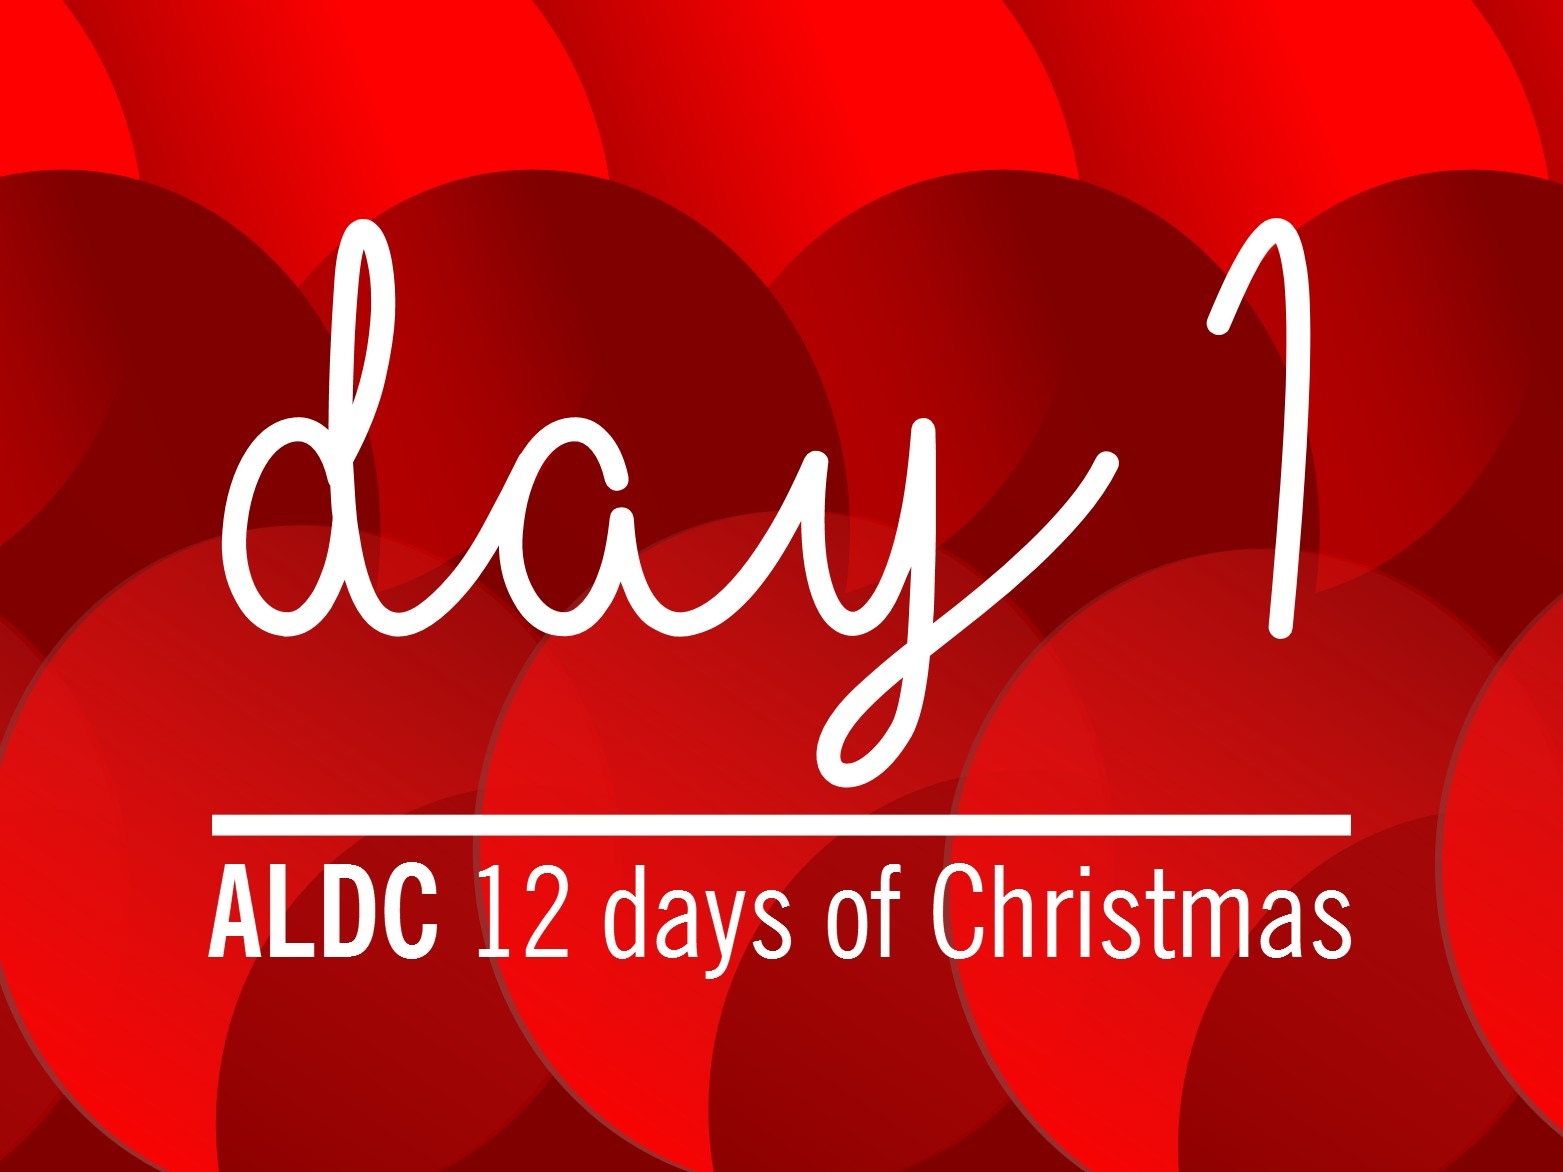 On the first day of Christmas, ALDC gave to me…